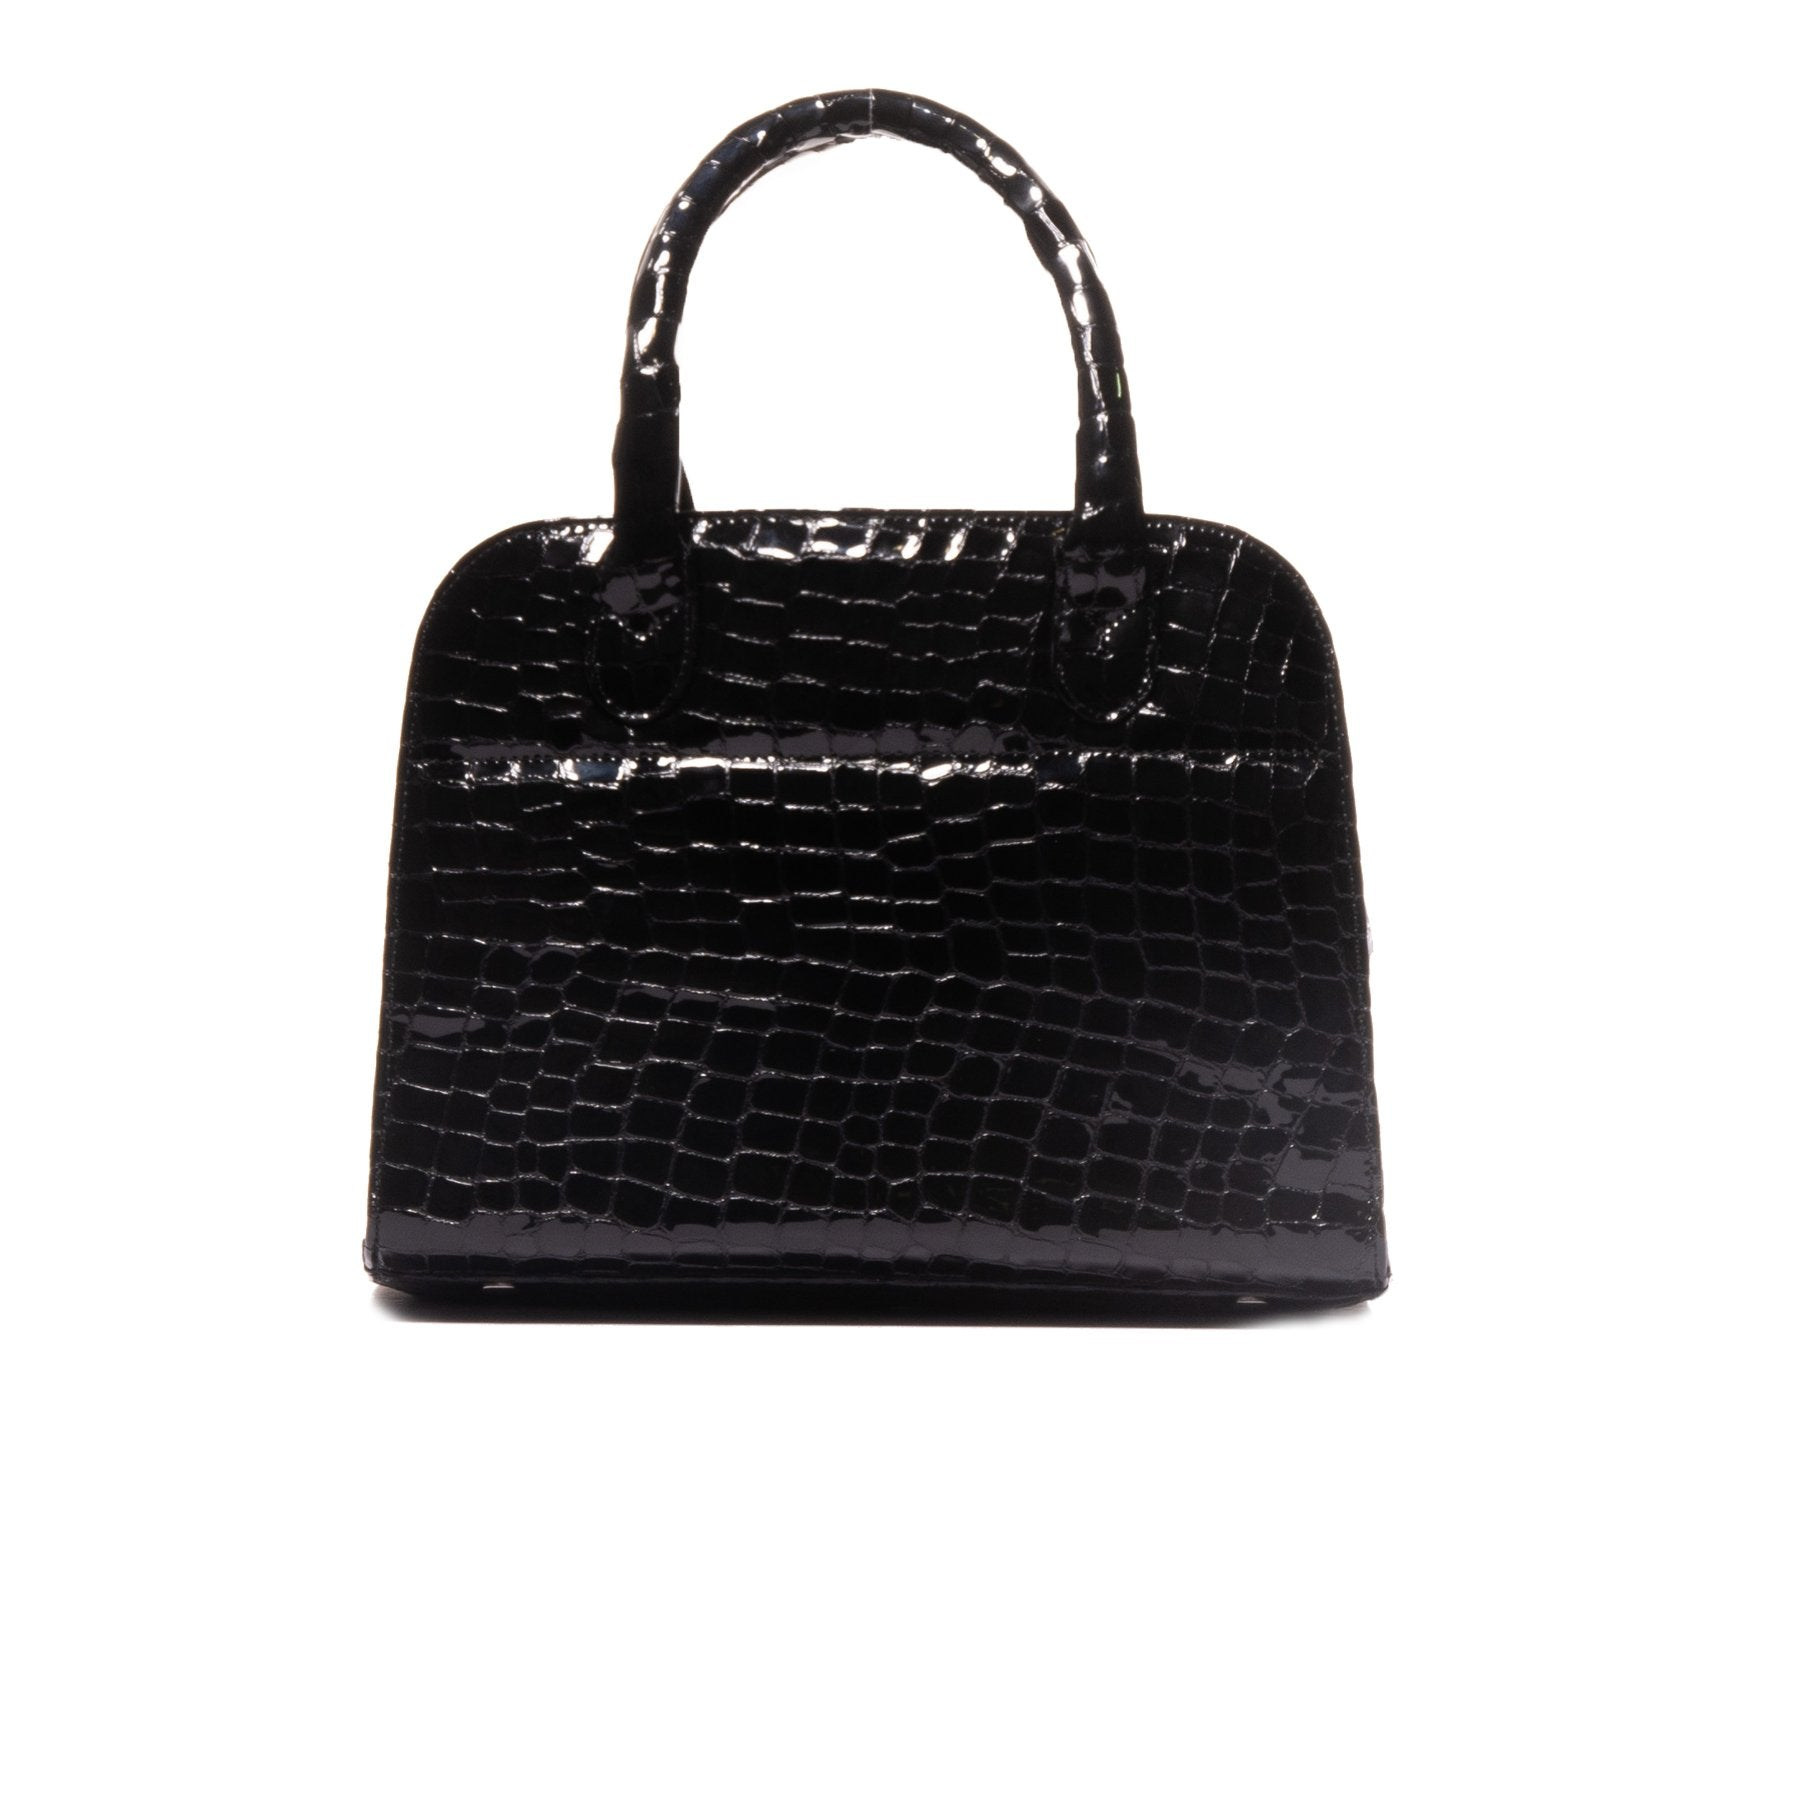 Dominique Black Croco